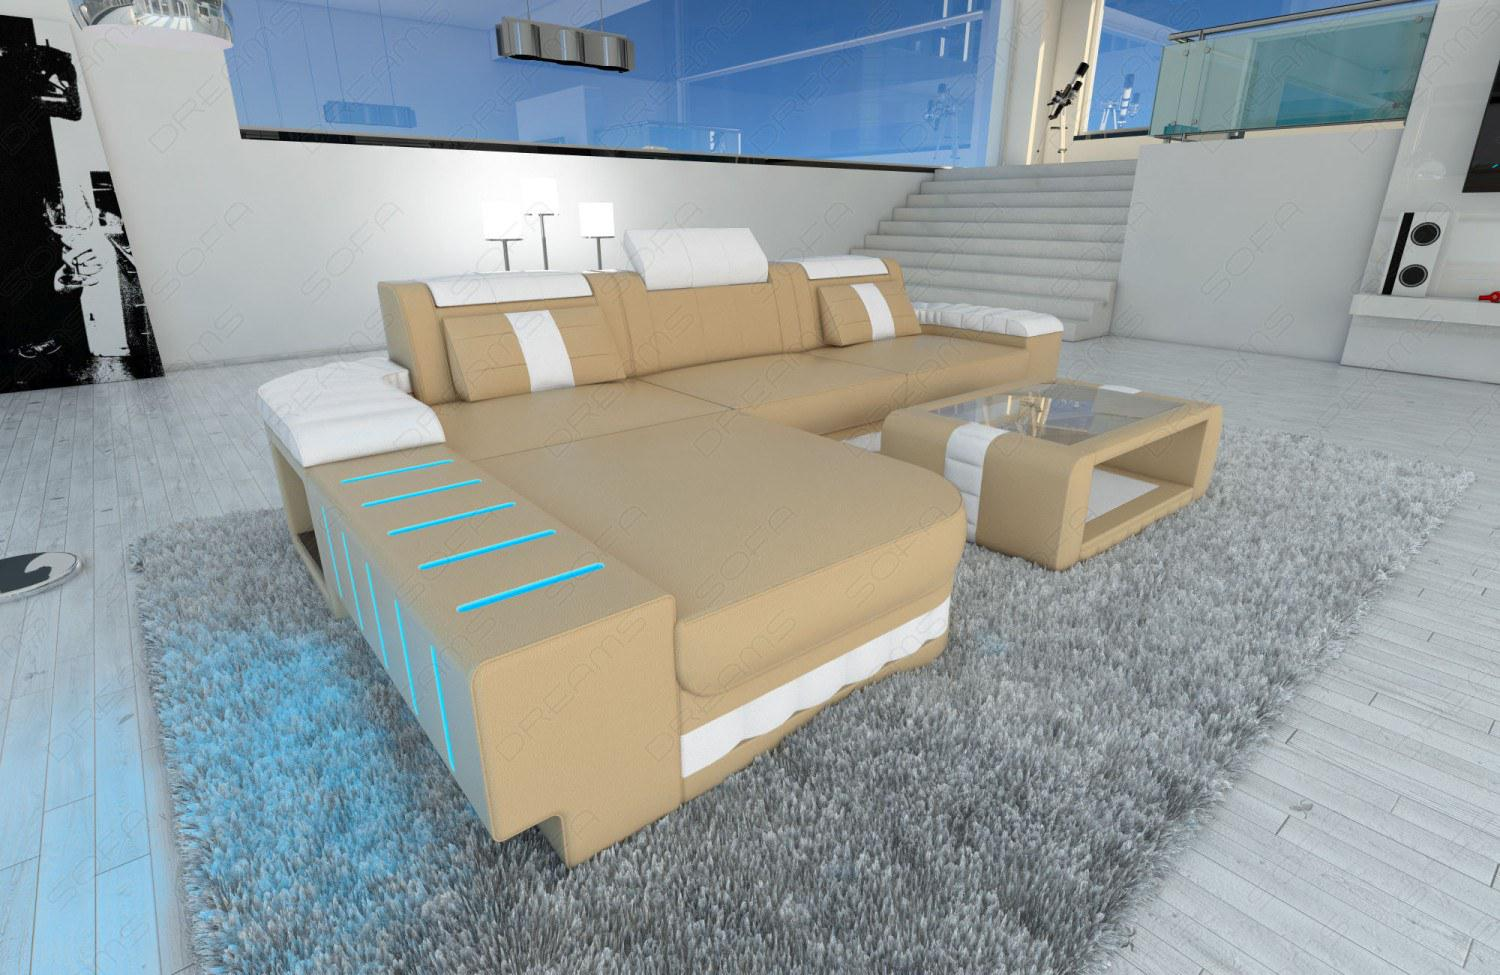 Ecksofa mit led beleuchtung andes leather lshaped for Eckcouch mit led